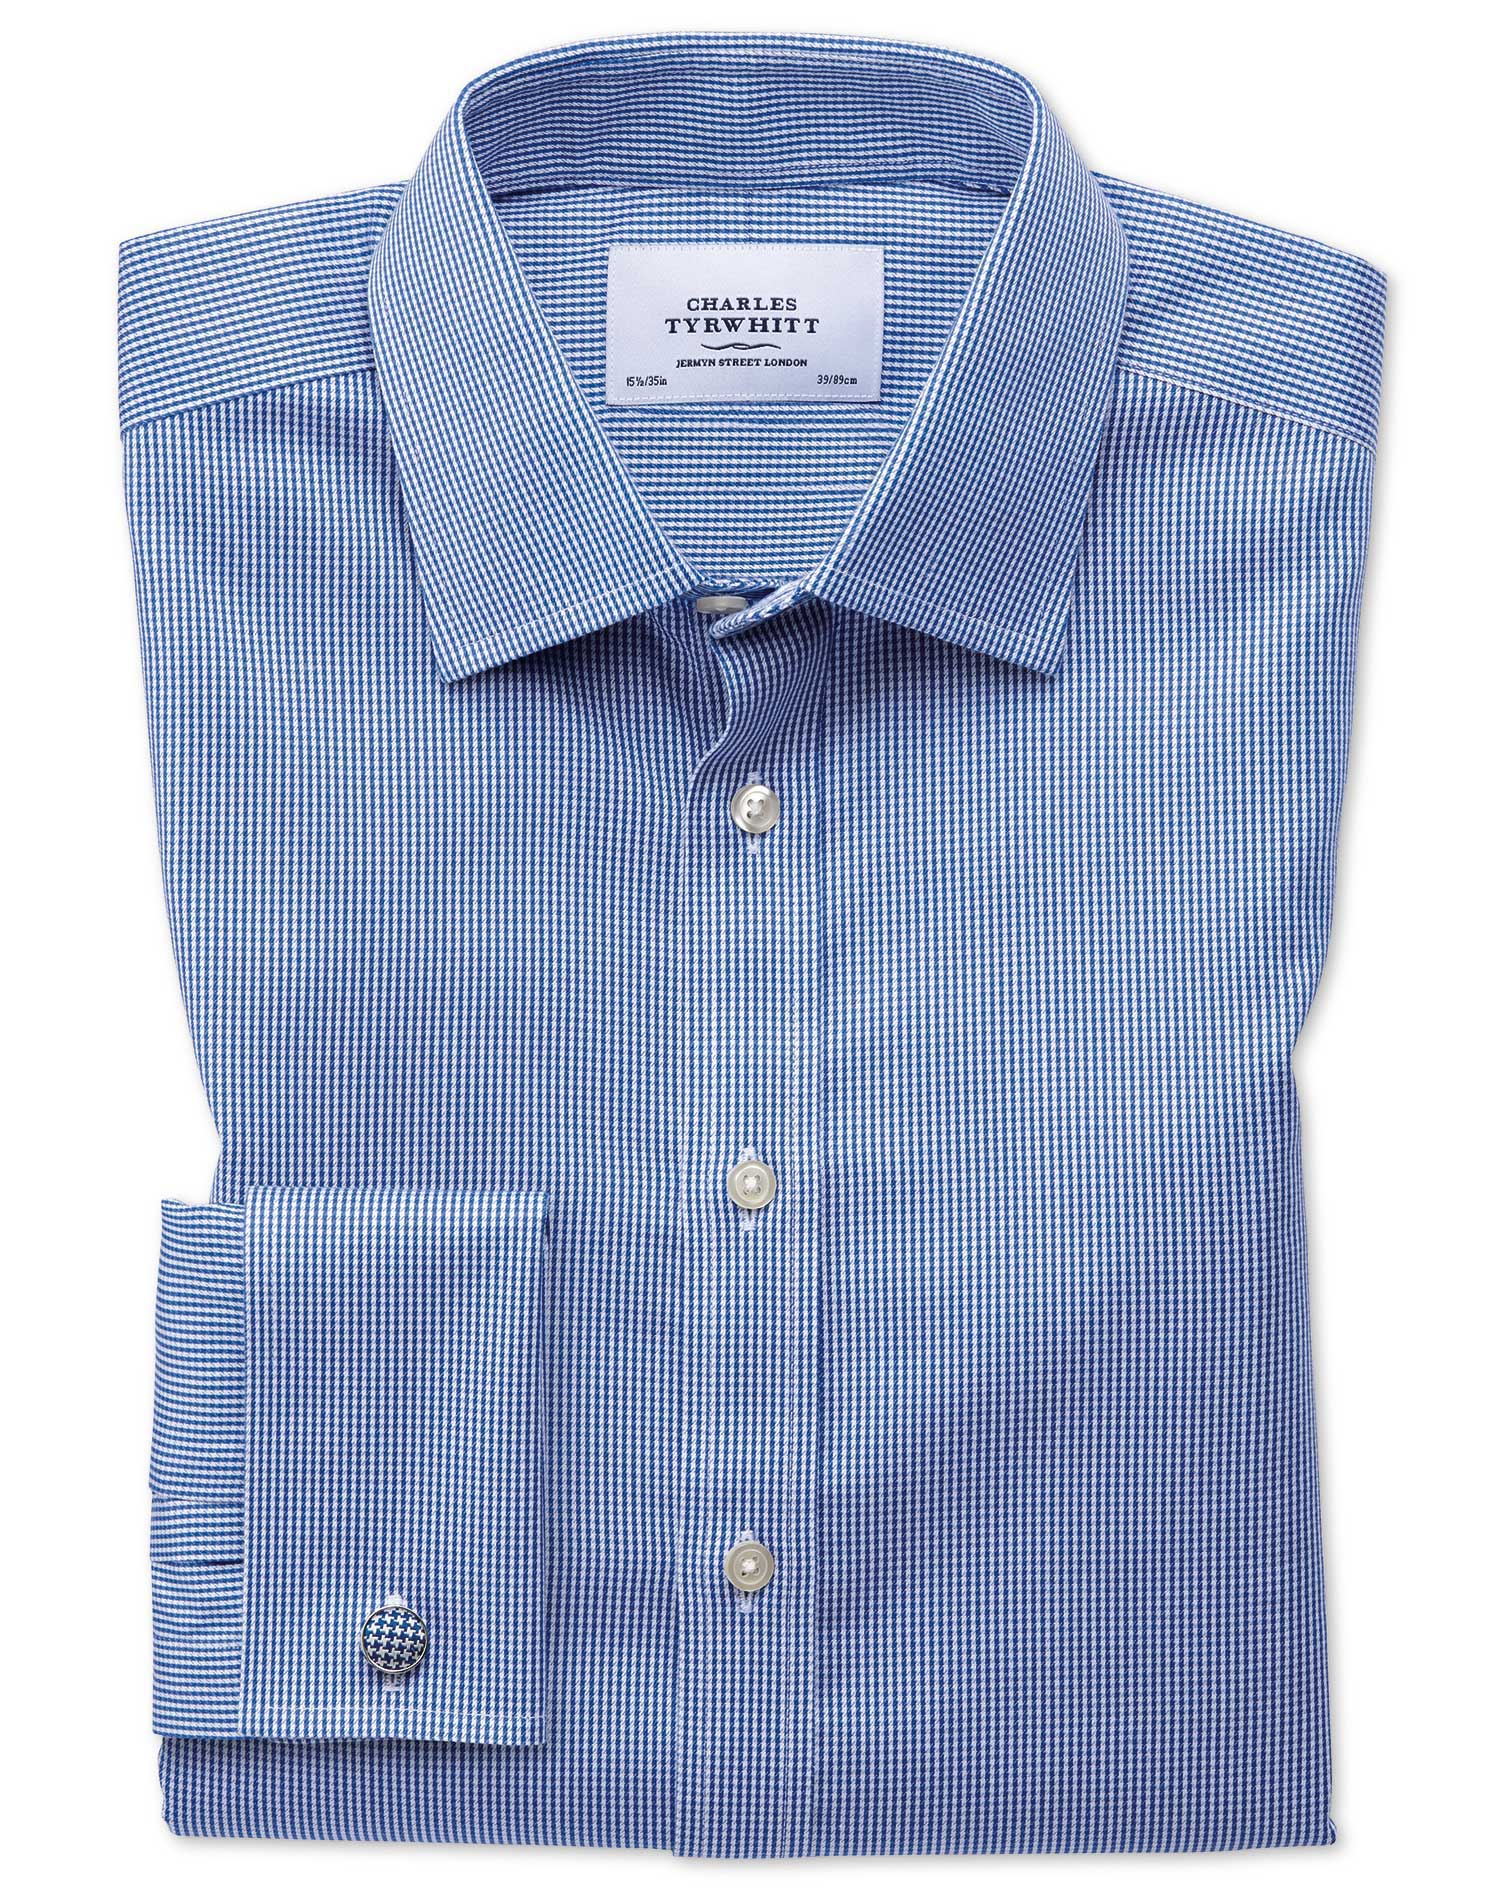 Extra Slim Fit Non-Iron Puppytooth Royal Blue Cotton Formal Shirt Single Cuff Size 15/35 by Charles